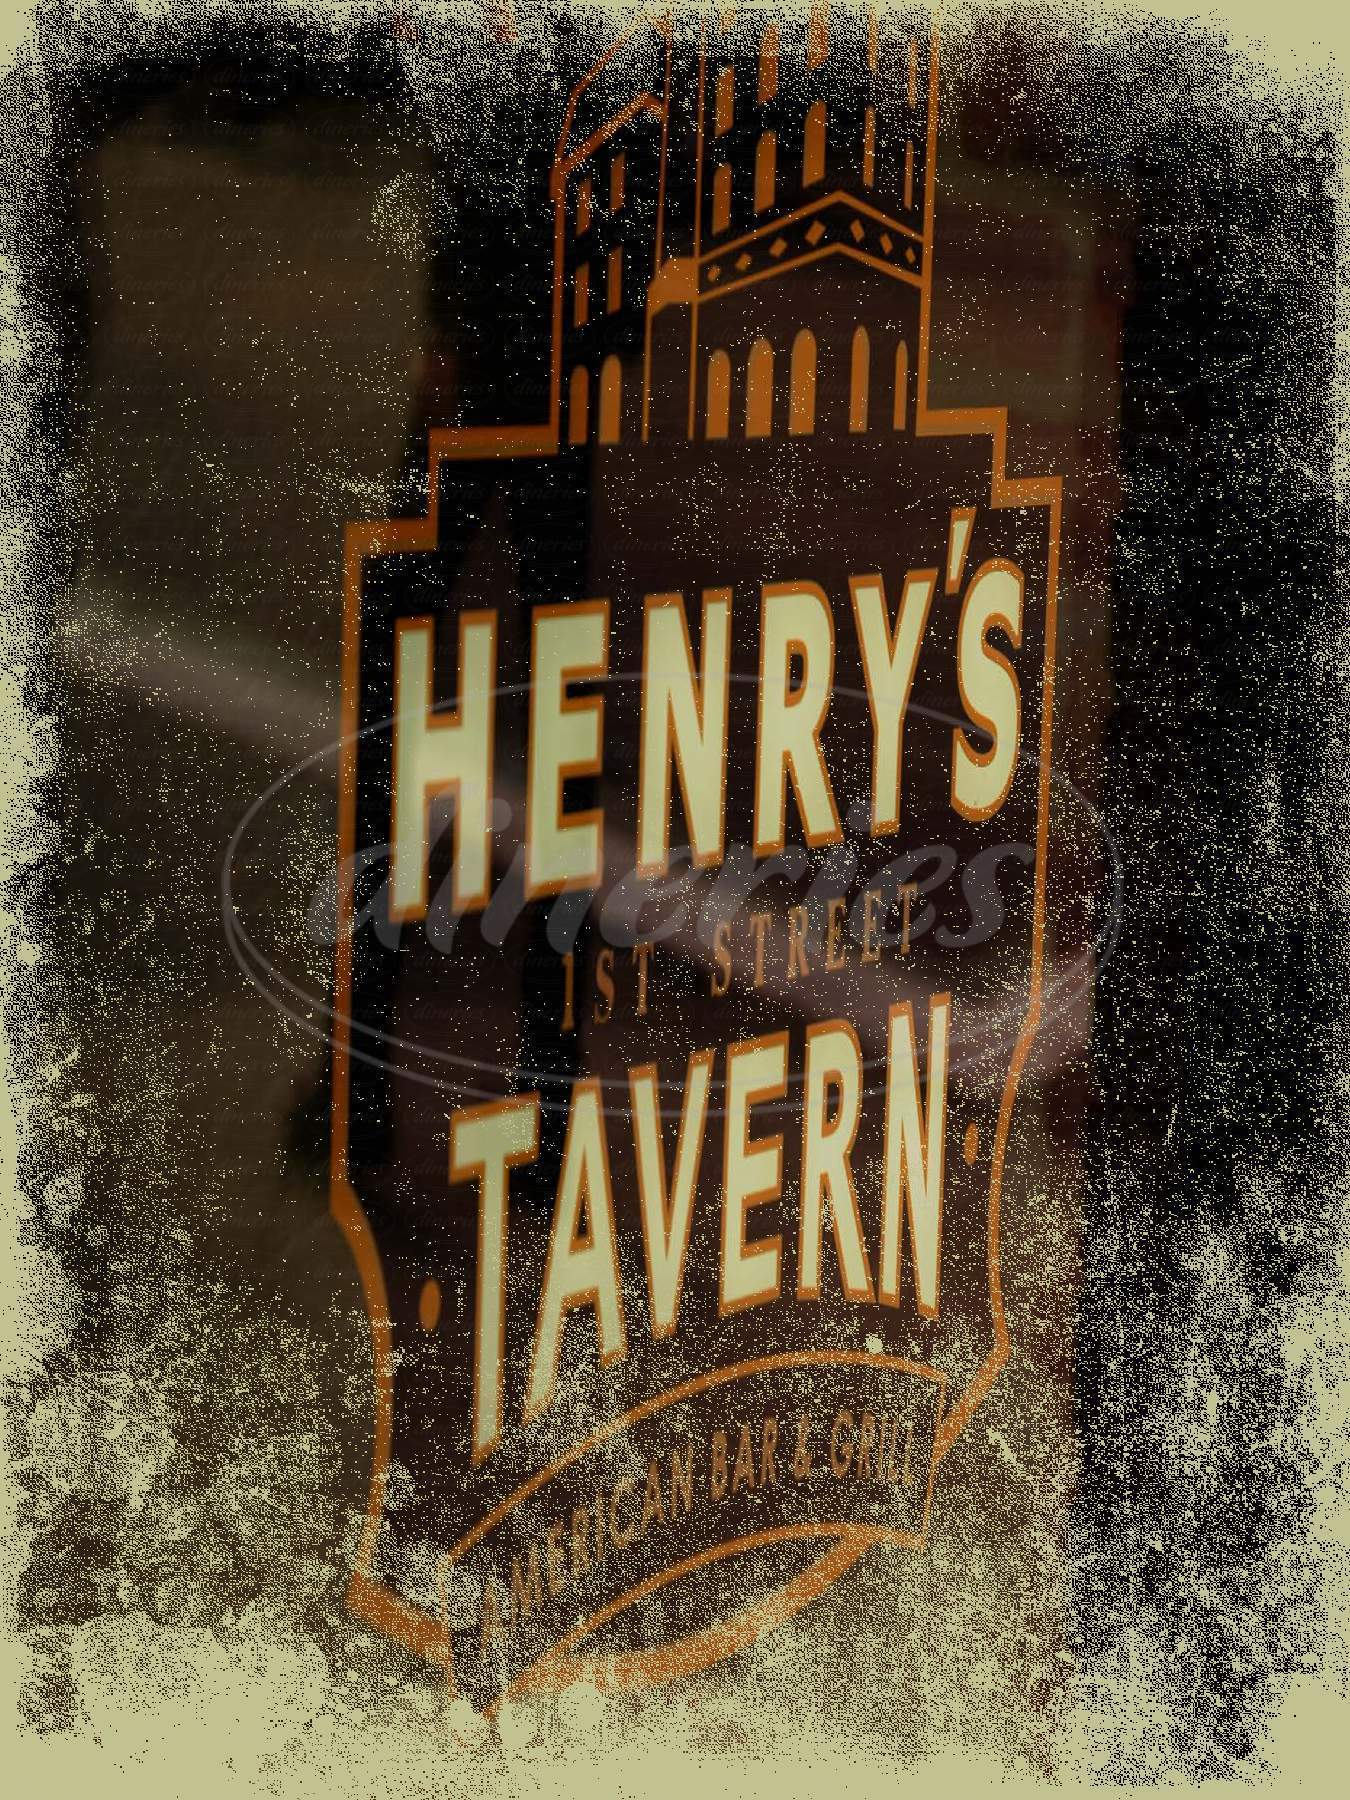 menu for Henry's Tavern